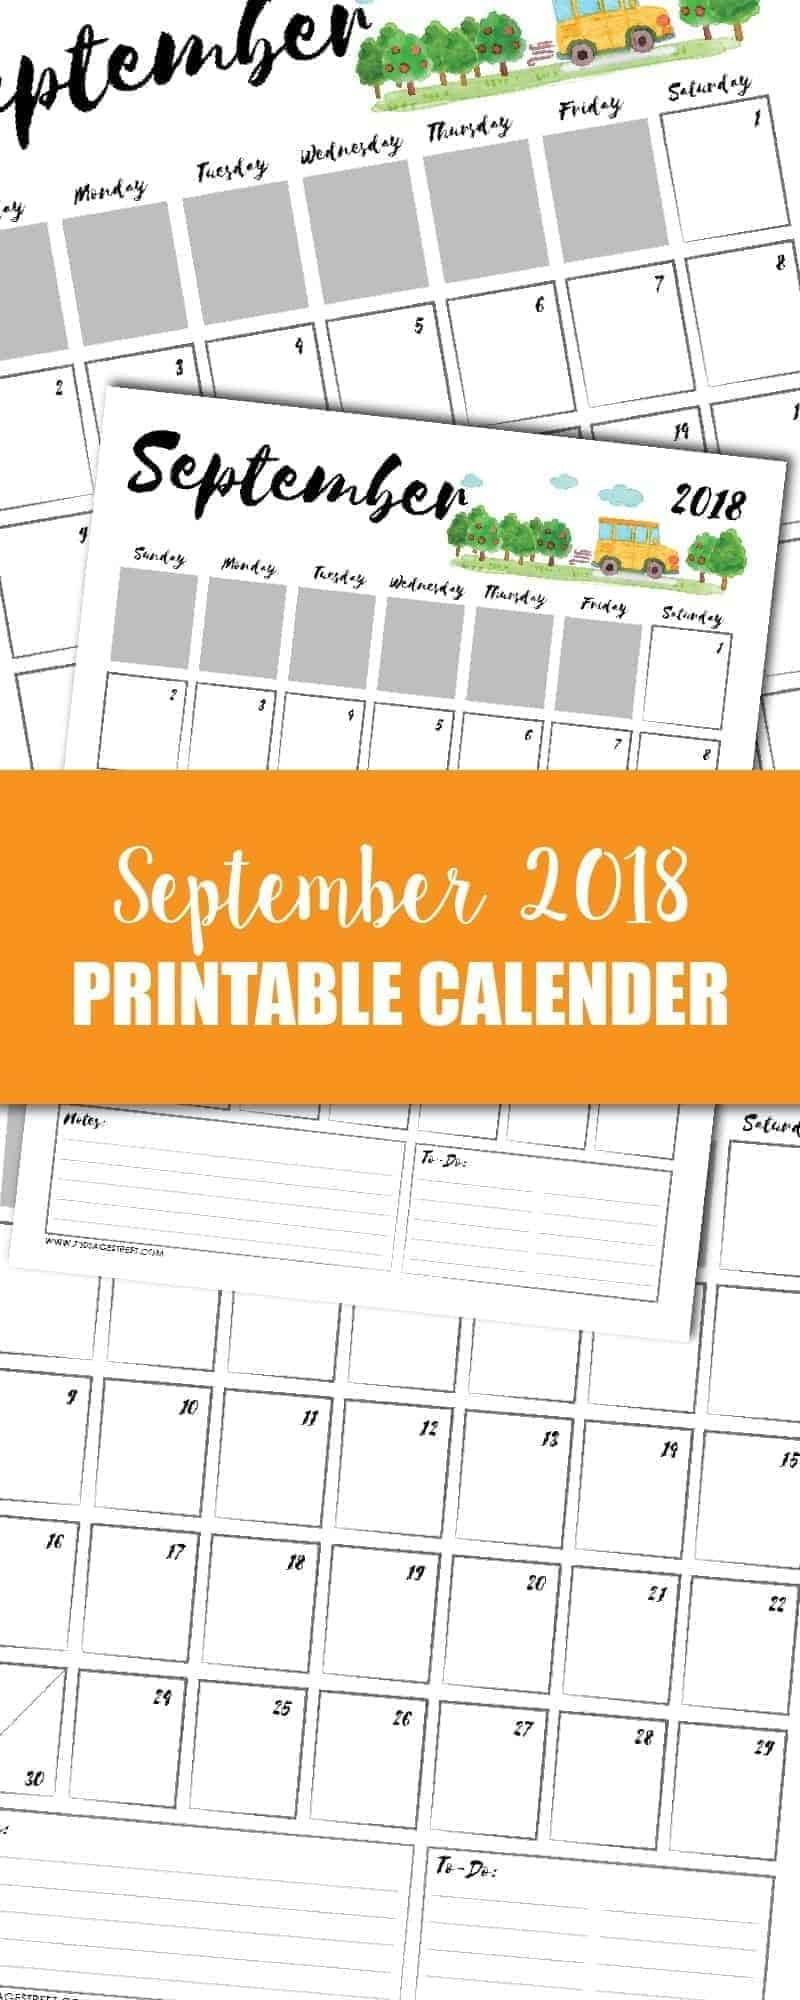 tall graphic showing a September 2018 printable calendar